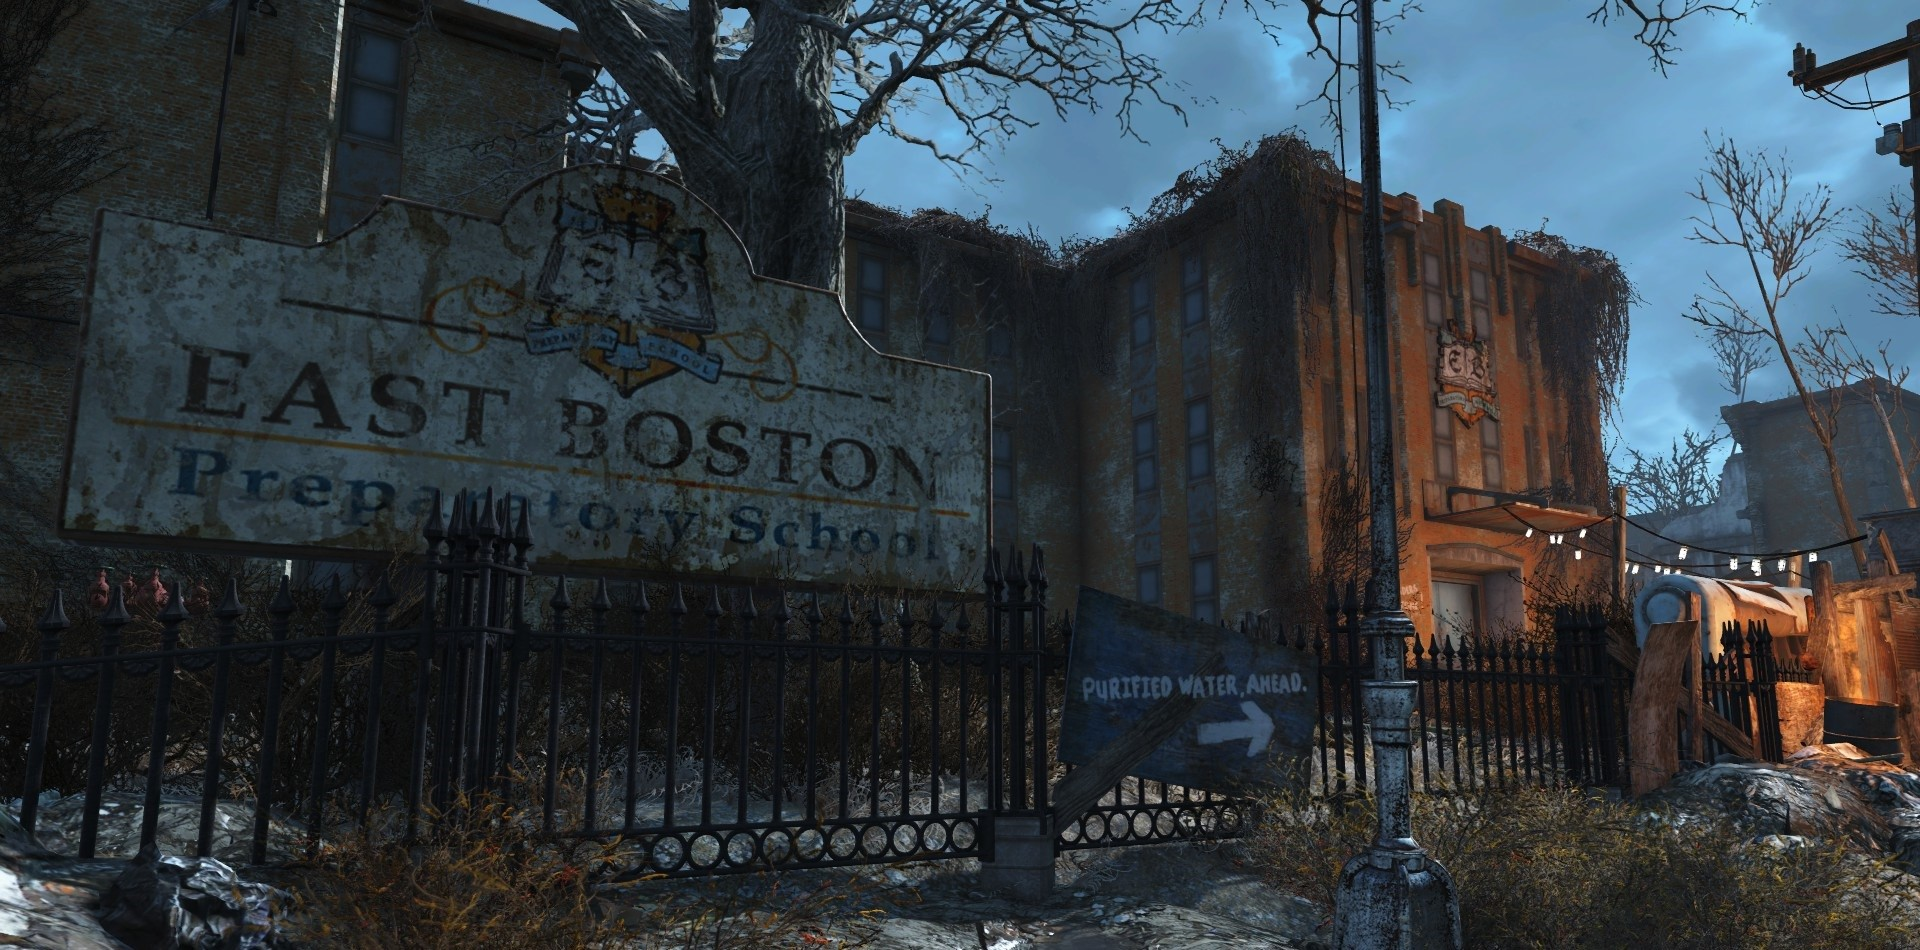 Fallout 4- The Legend of the East Boston Preparatory School